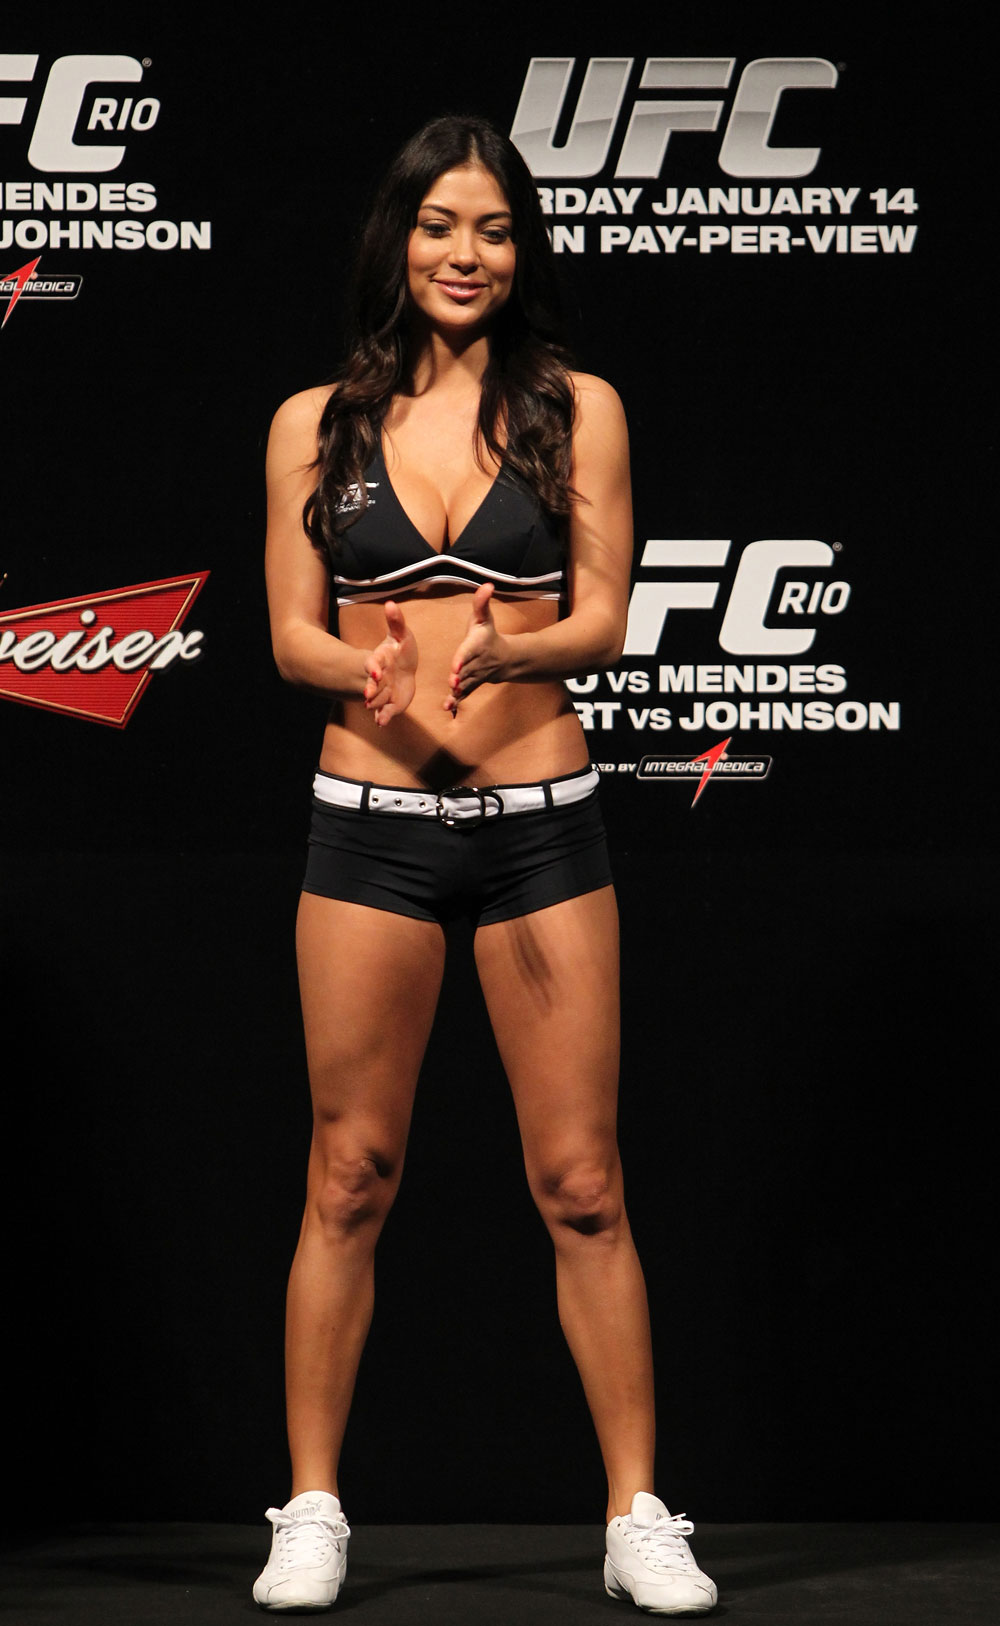 RIO DE JANEIRO, BRAZIL - JANUARY 13:  UFC Octagon Girl Arianny Celeste attends the UFC 142 Weigh In at HSBC Arena on January 13, 2012 in Rio de Janeiro, Brazil.  (Photo by Josh Hedges/Zuffa LLC/Zuffa LLC via Getty Images)